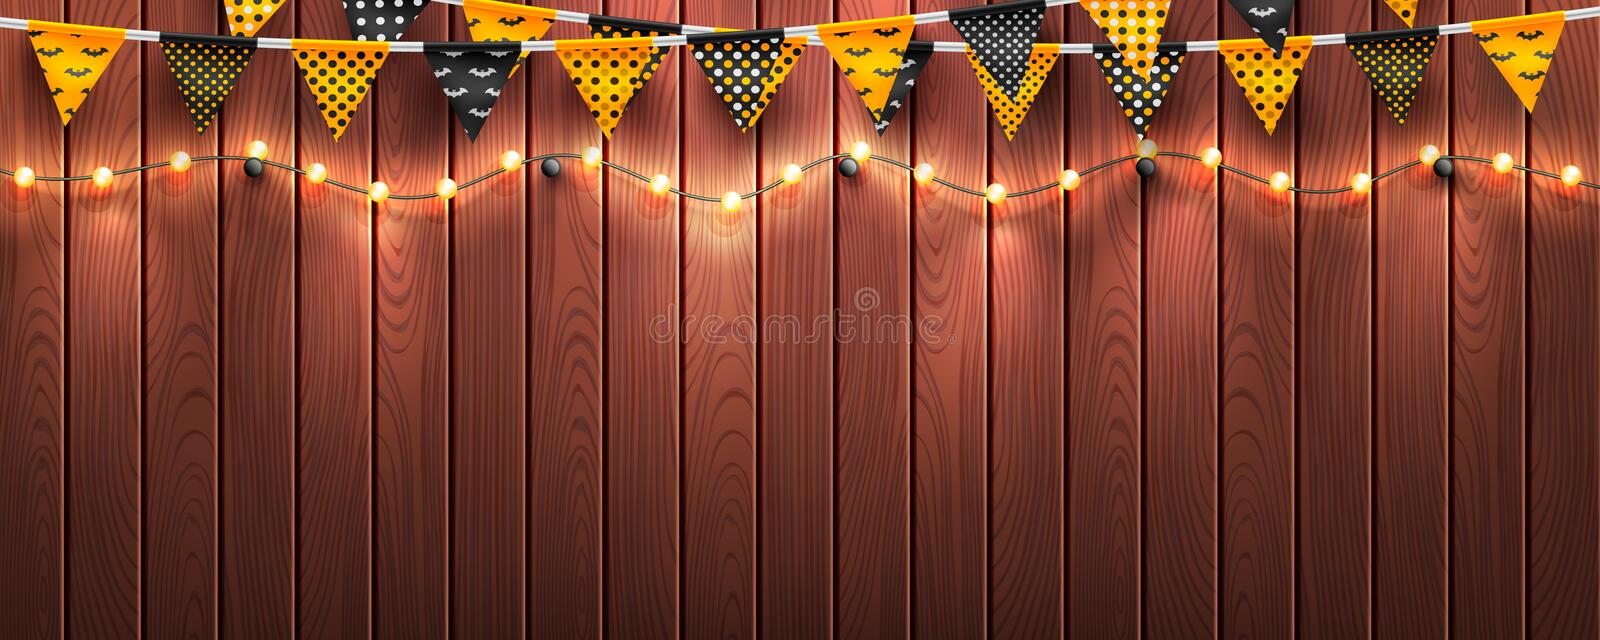 Halloween background with string light and Halloween buntings on wood background.Website spooky or banner template.Vector. Illustration EPS10 stock illustration